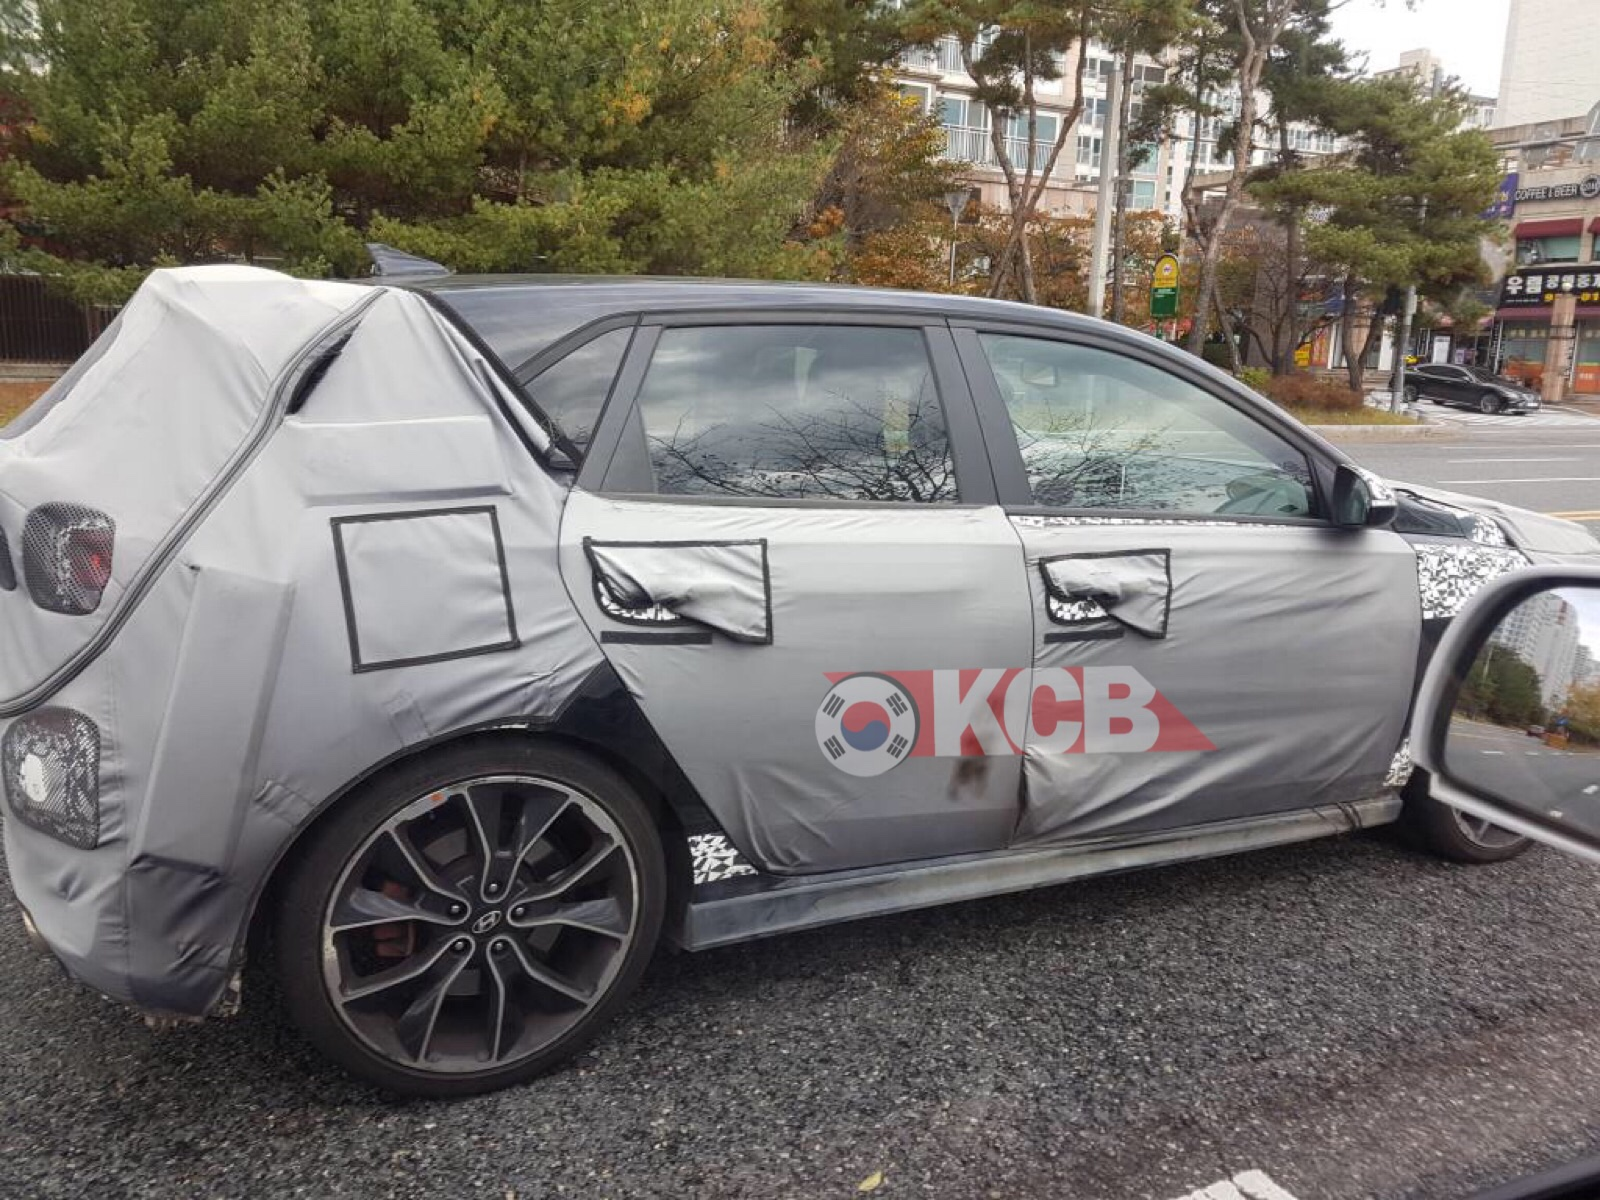 Hyundai i30N Spied in South Korea, Could be DCT model